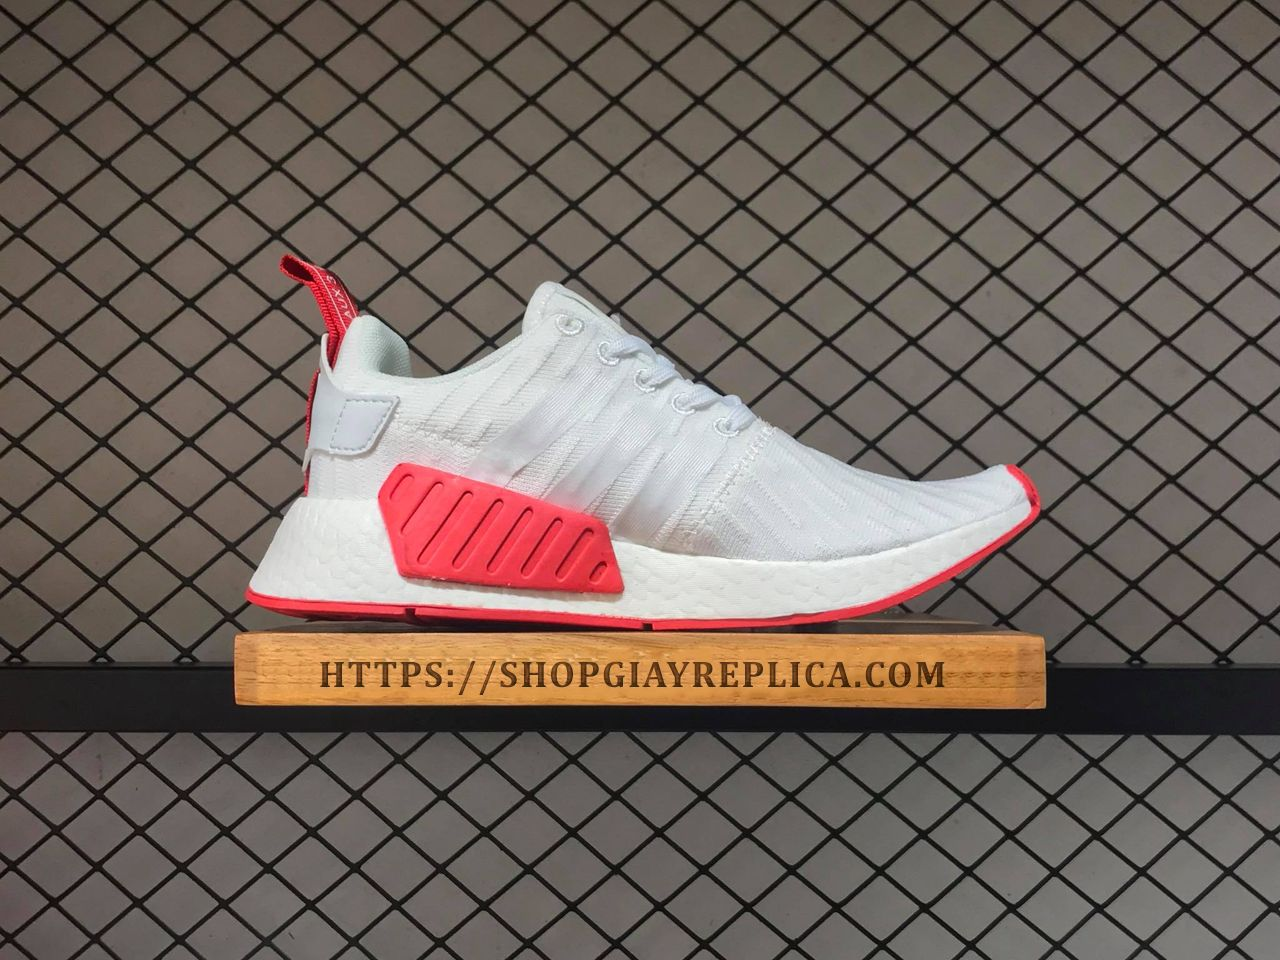 f255858c703e8 Giày Adidas NMD R2 Core White Red replica 1 1 - Shop giày Replica™